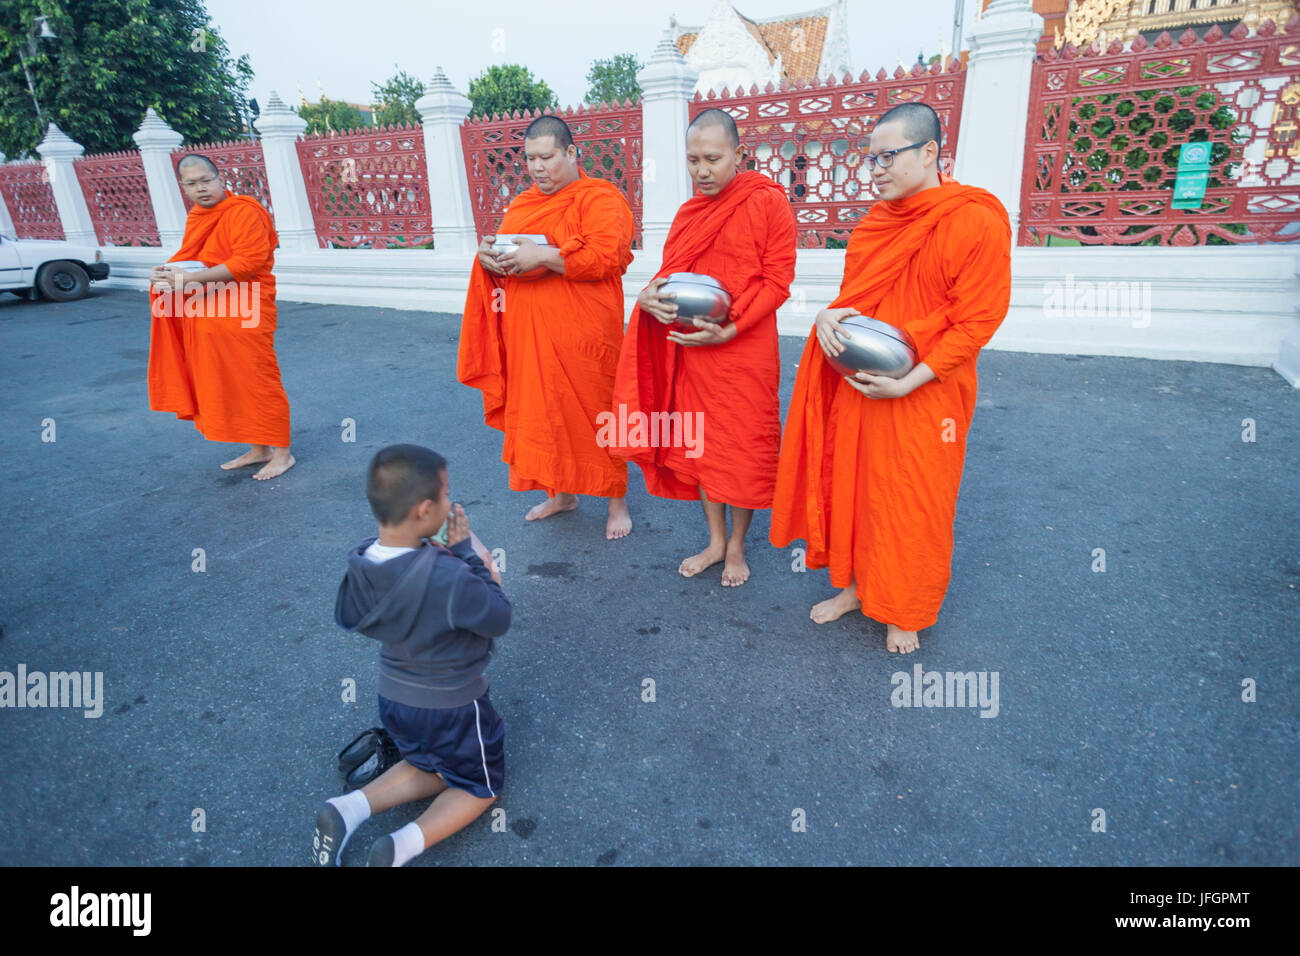 Thailand, Bangkok, Wat Benchamabophit aka The Marble Temple, Child Praying to Monks Stock Photo